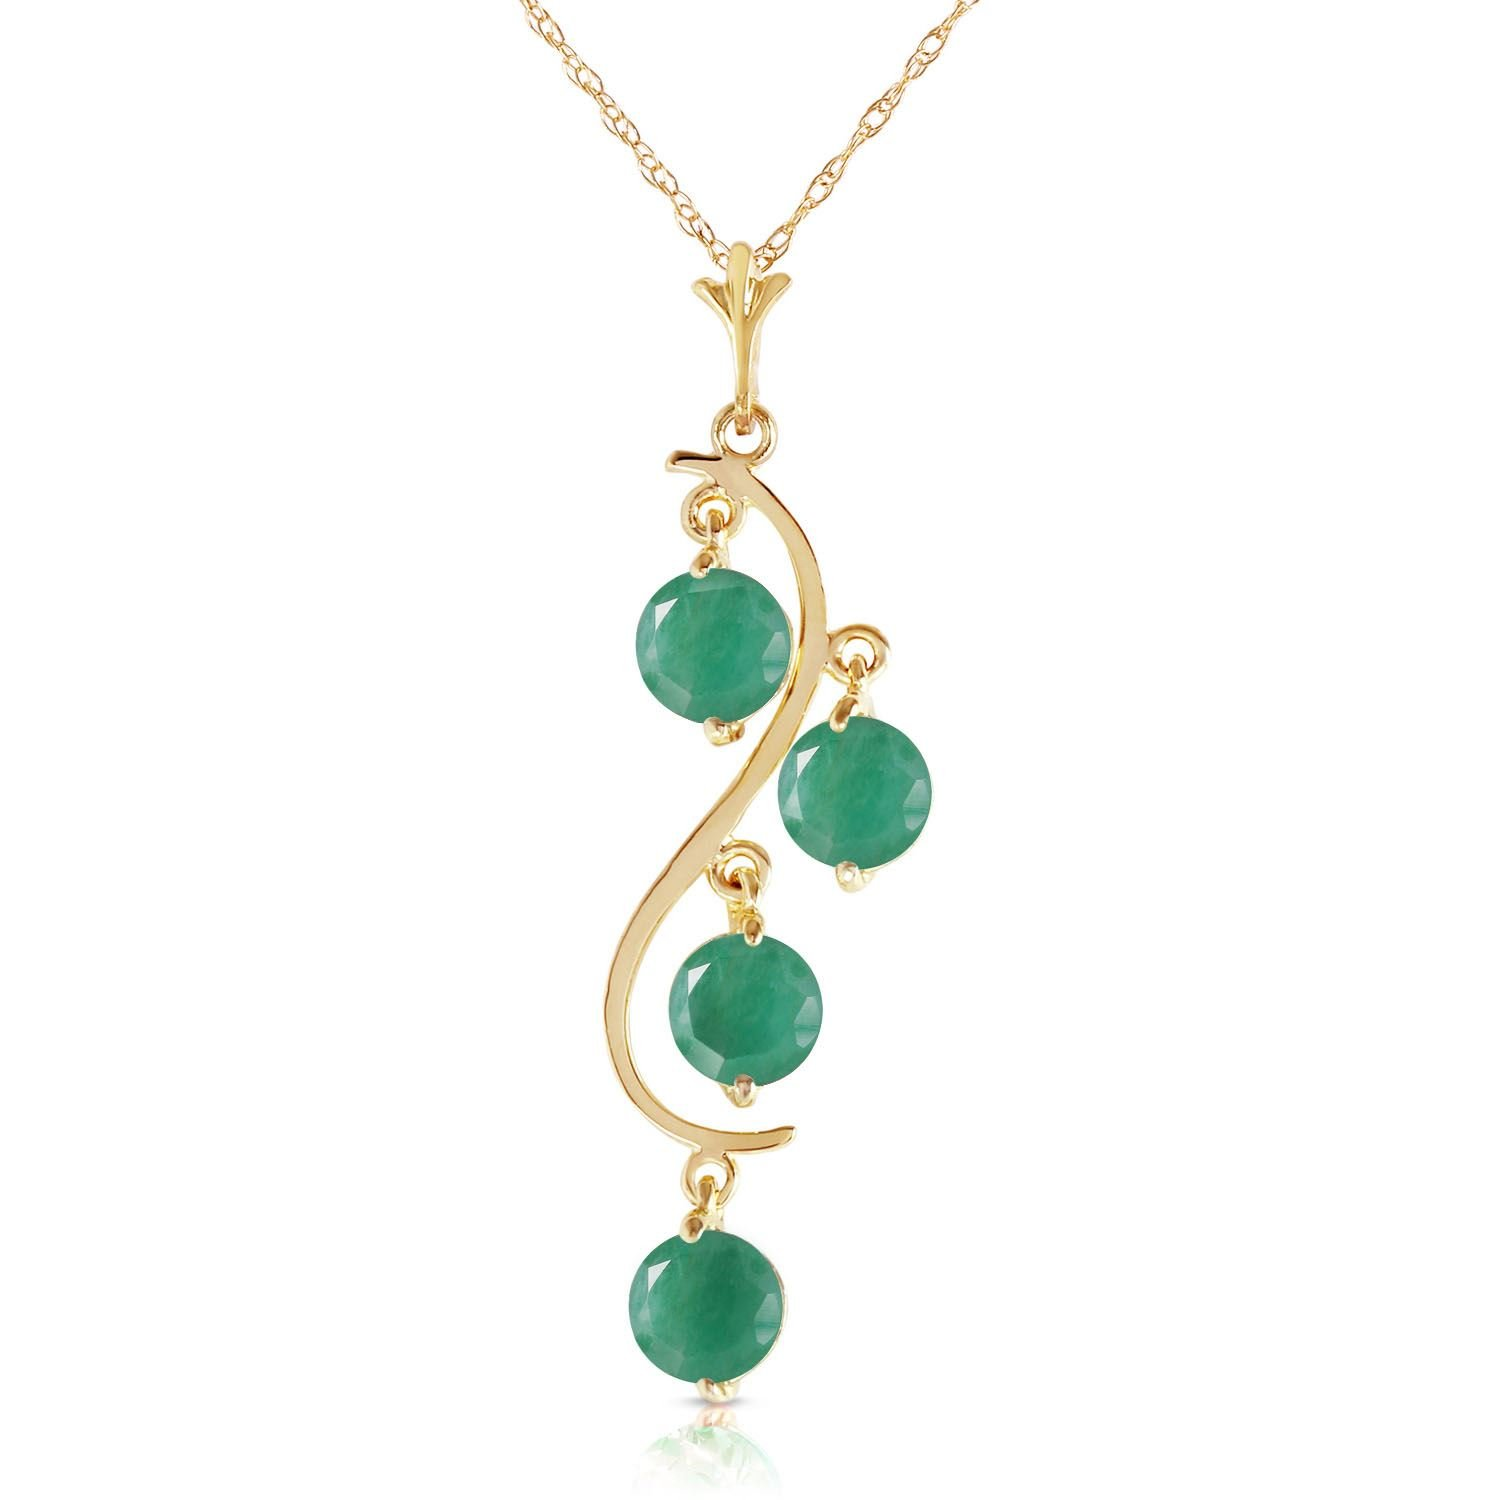 ALARRI 2 Carat 14K Solid Gold House Of Love Emerald Necklace with 18 Inch Chain Length